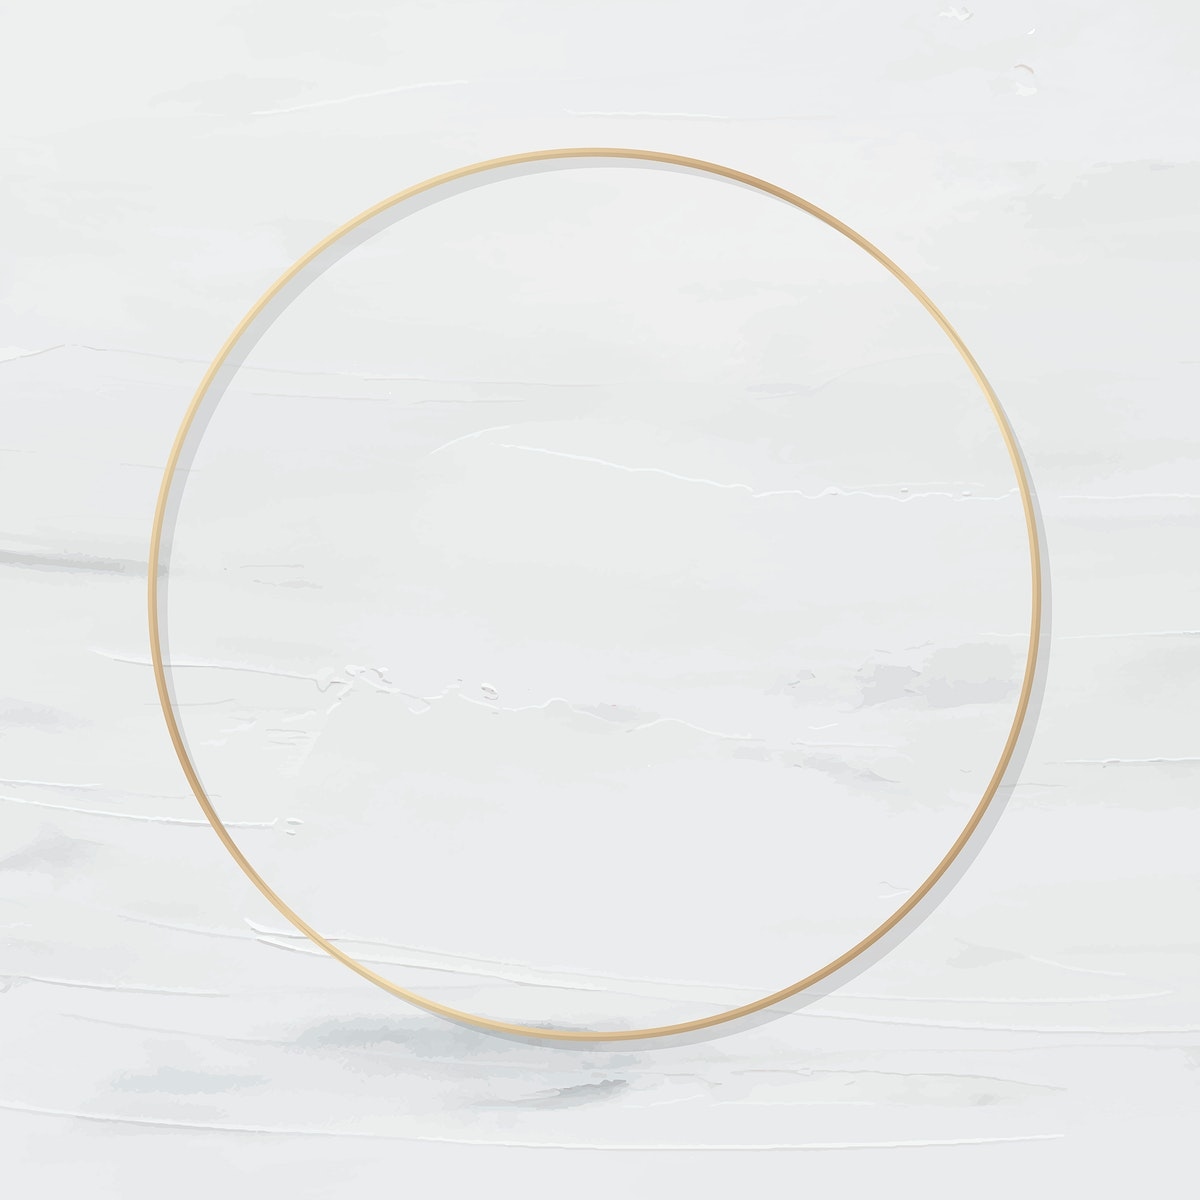 Round gold frame on white painted background vector